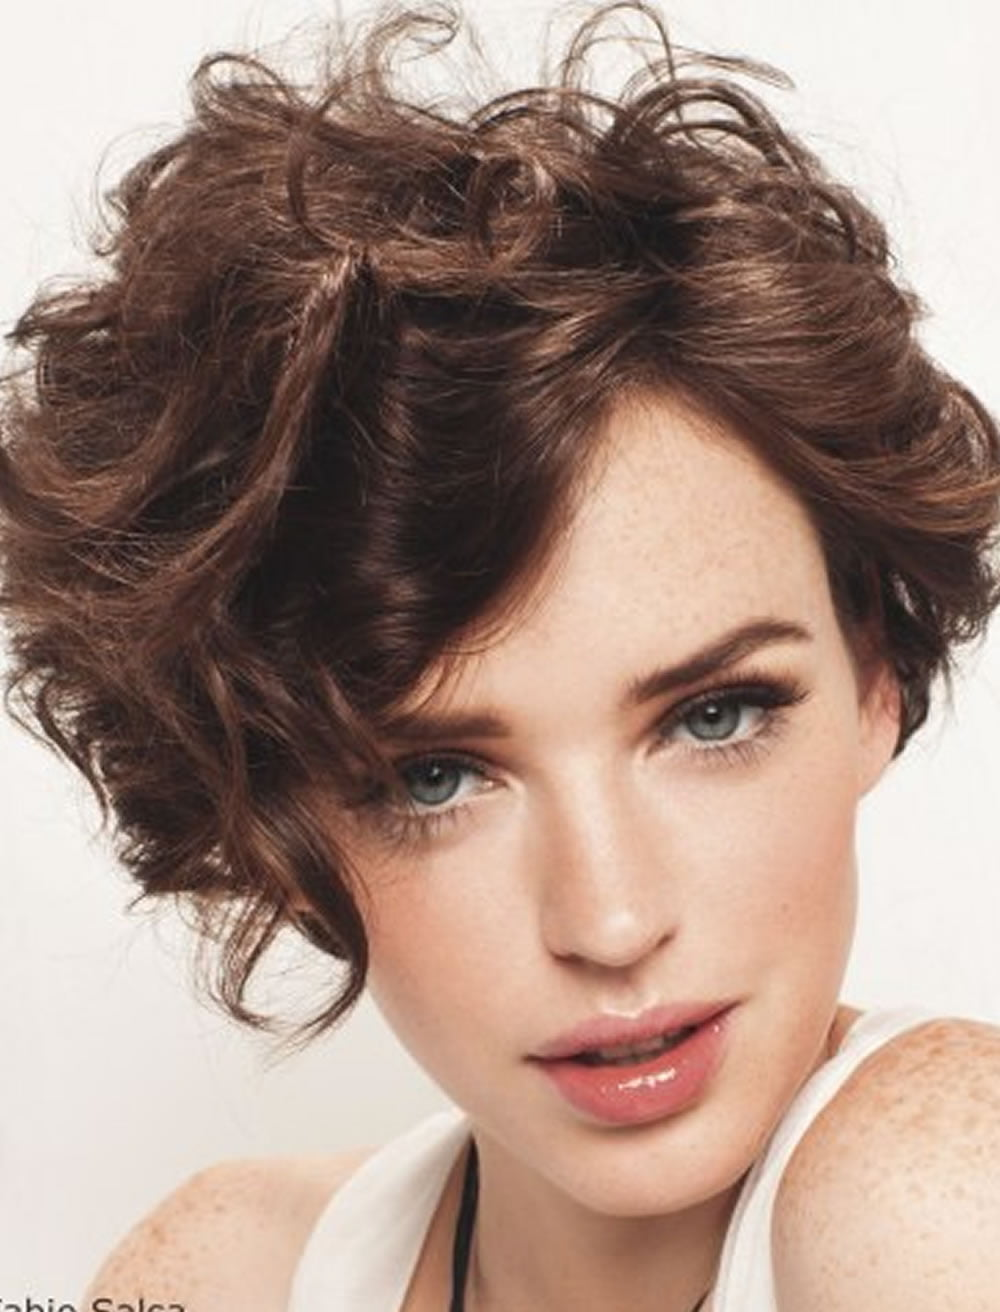 Short Bob Hair Style for Summer 2018